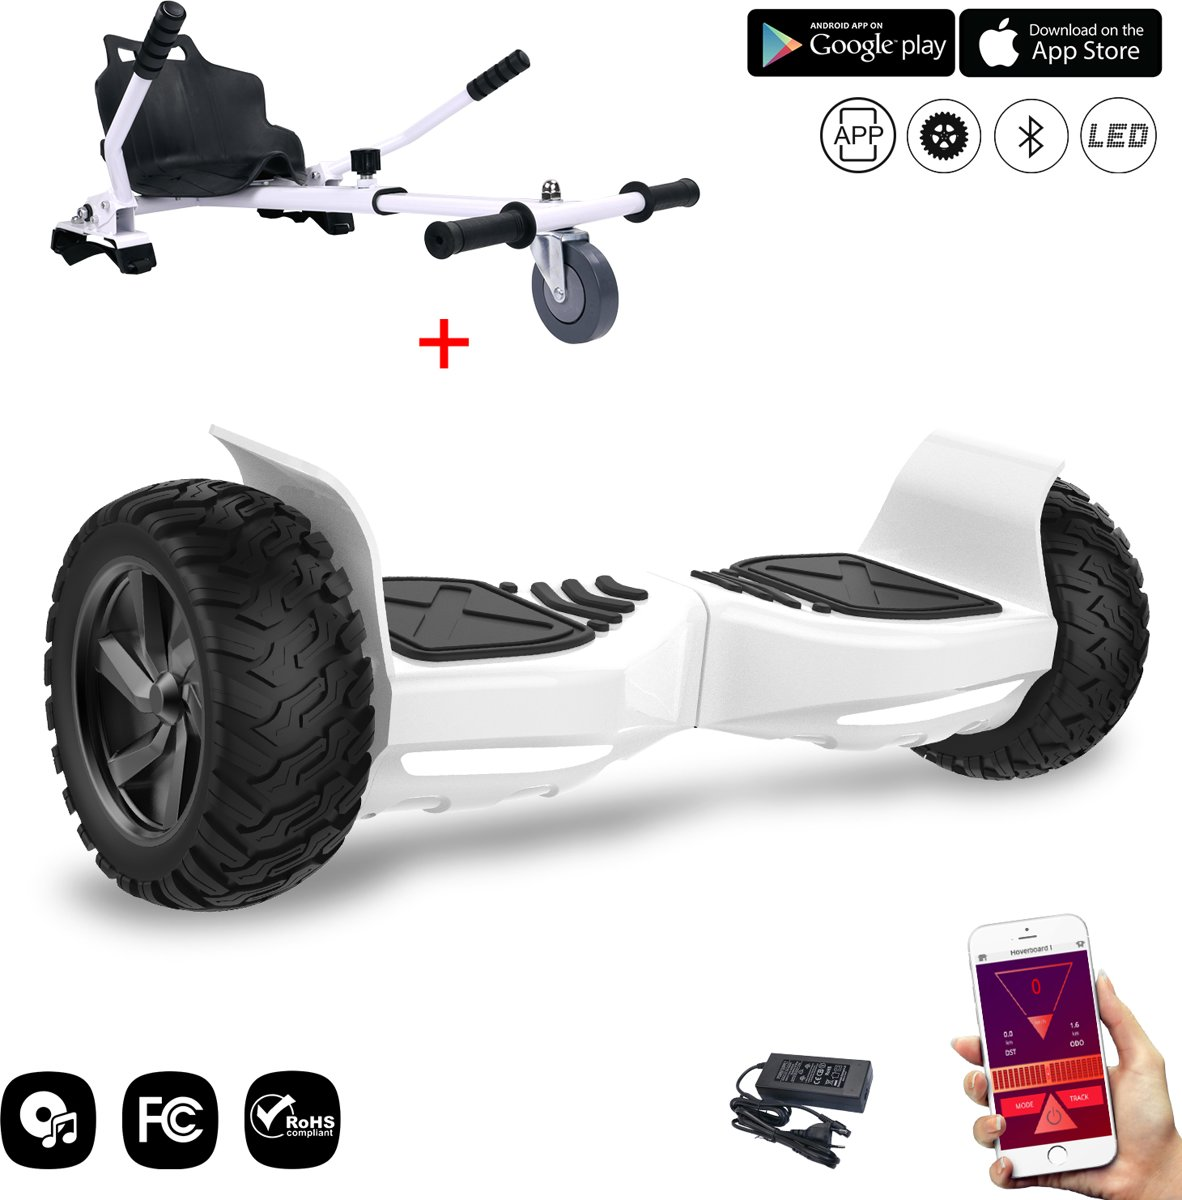 Evercross Challenger Basic 2019 Best 8.5 inch SUV Hoverboard met APP Functie 700W Motion V.12 Bluetooth speakers en met TAOTAO moederbord - Wit + Hoverkart Wit